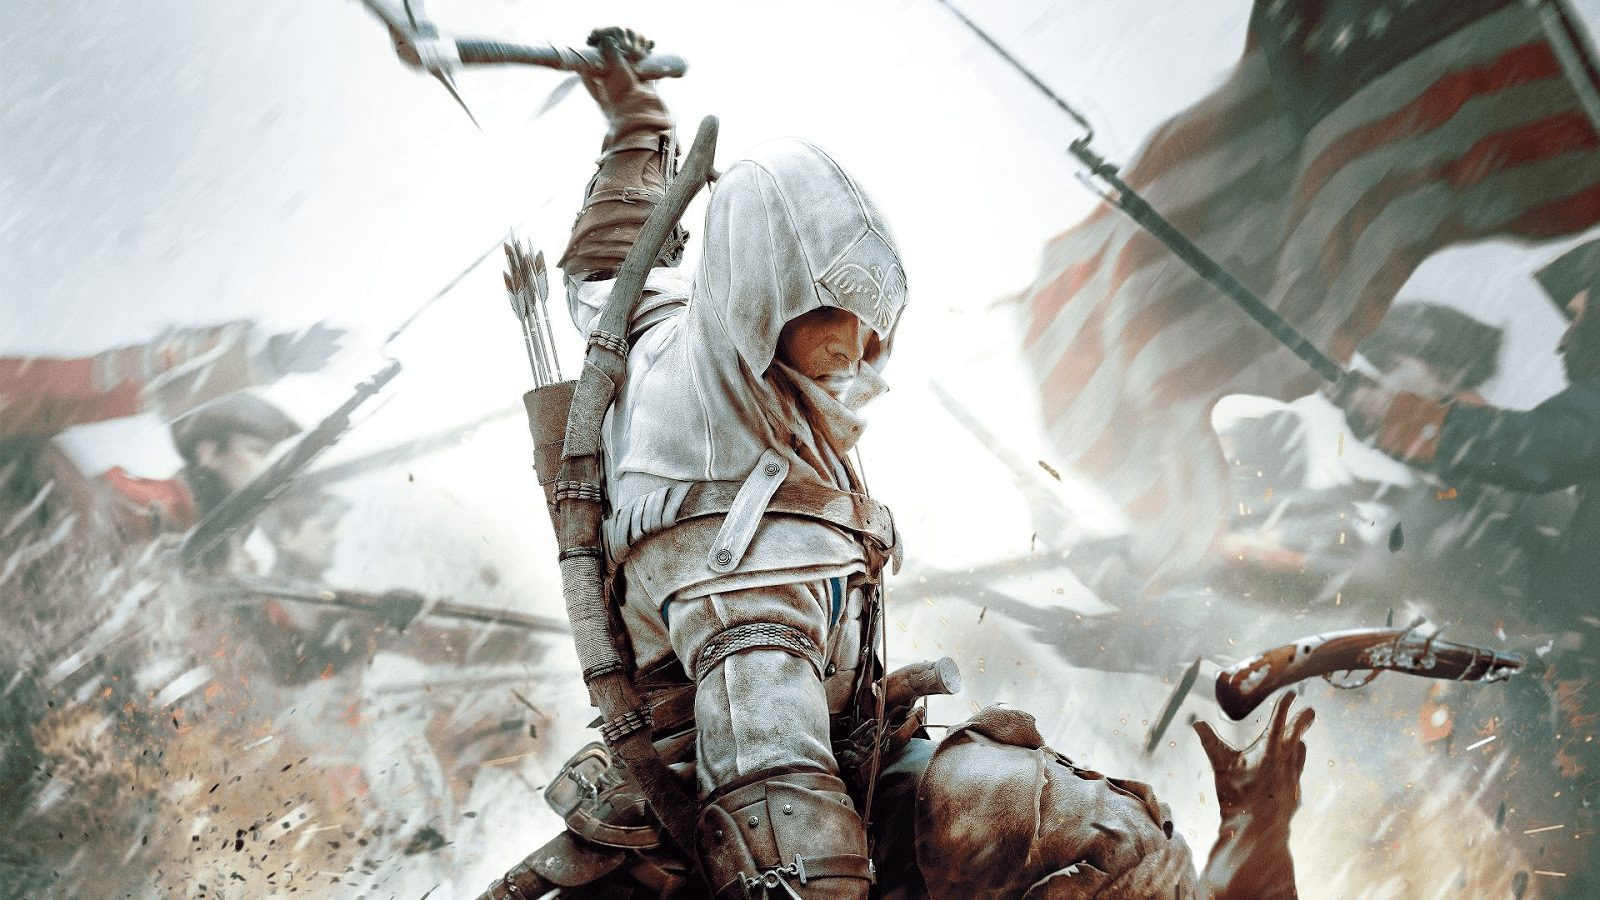 ACIII - Games for Low End PC